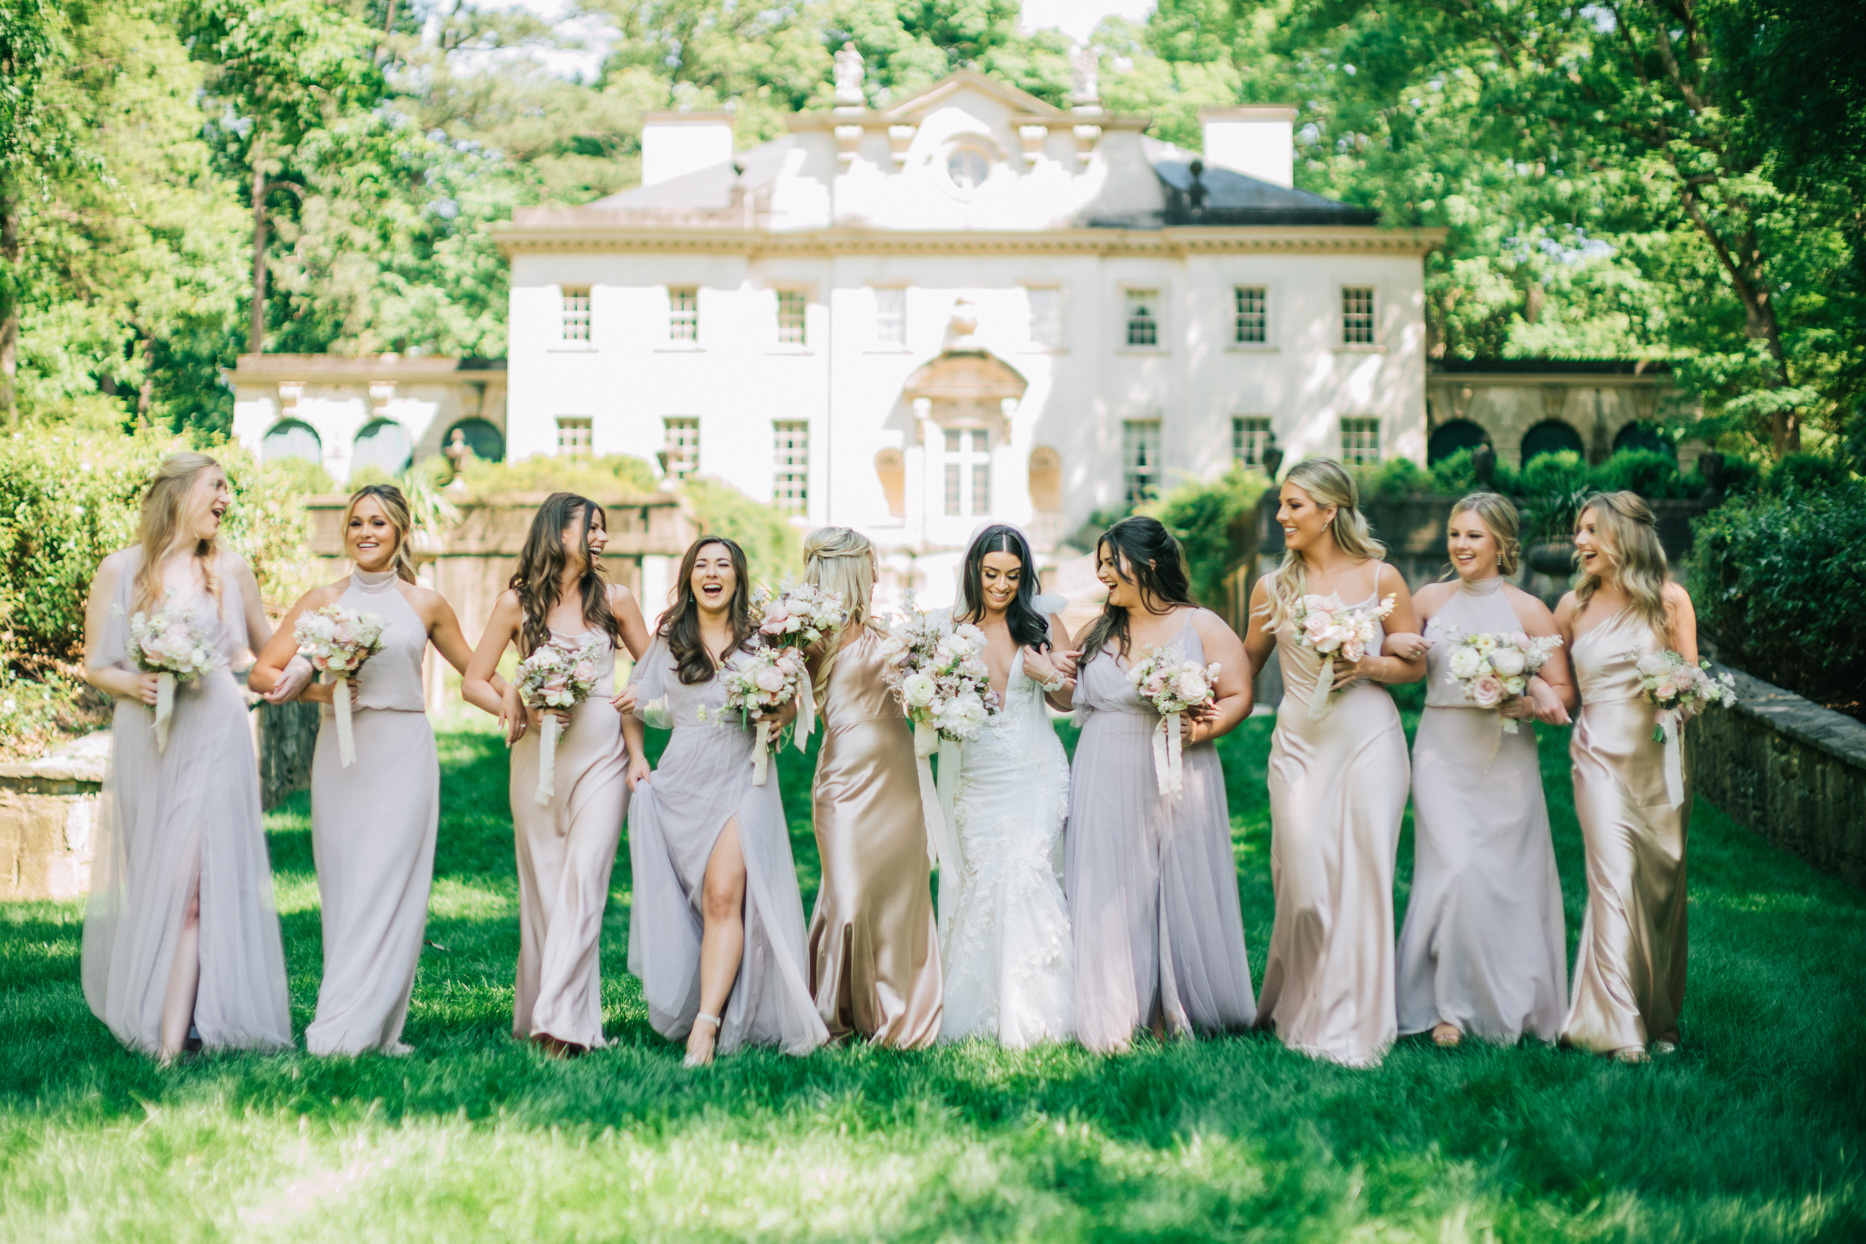 bride with bridesmaids wearing varying styles in shades of blush mauve and champagne